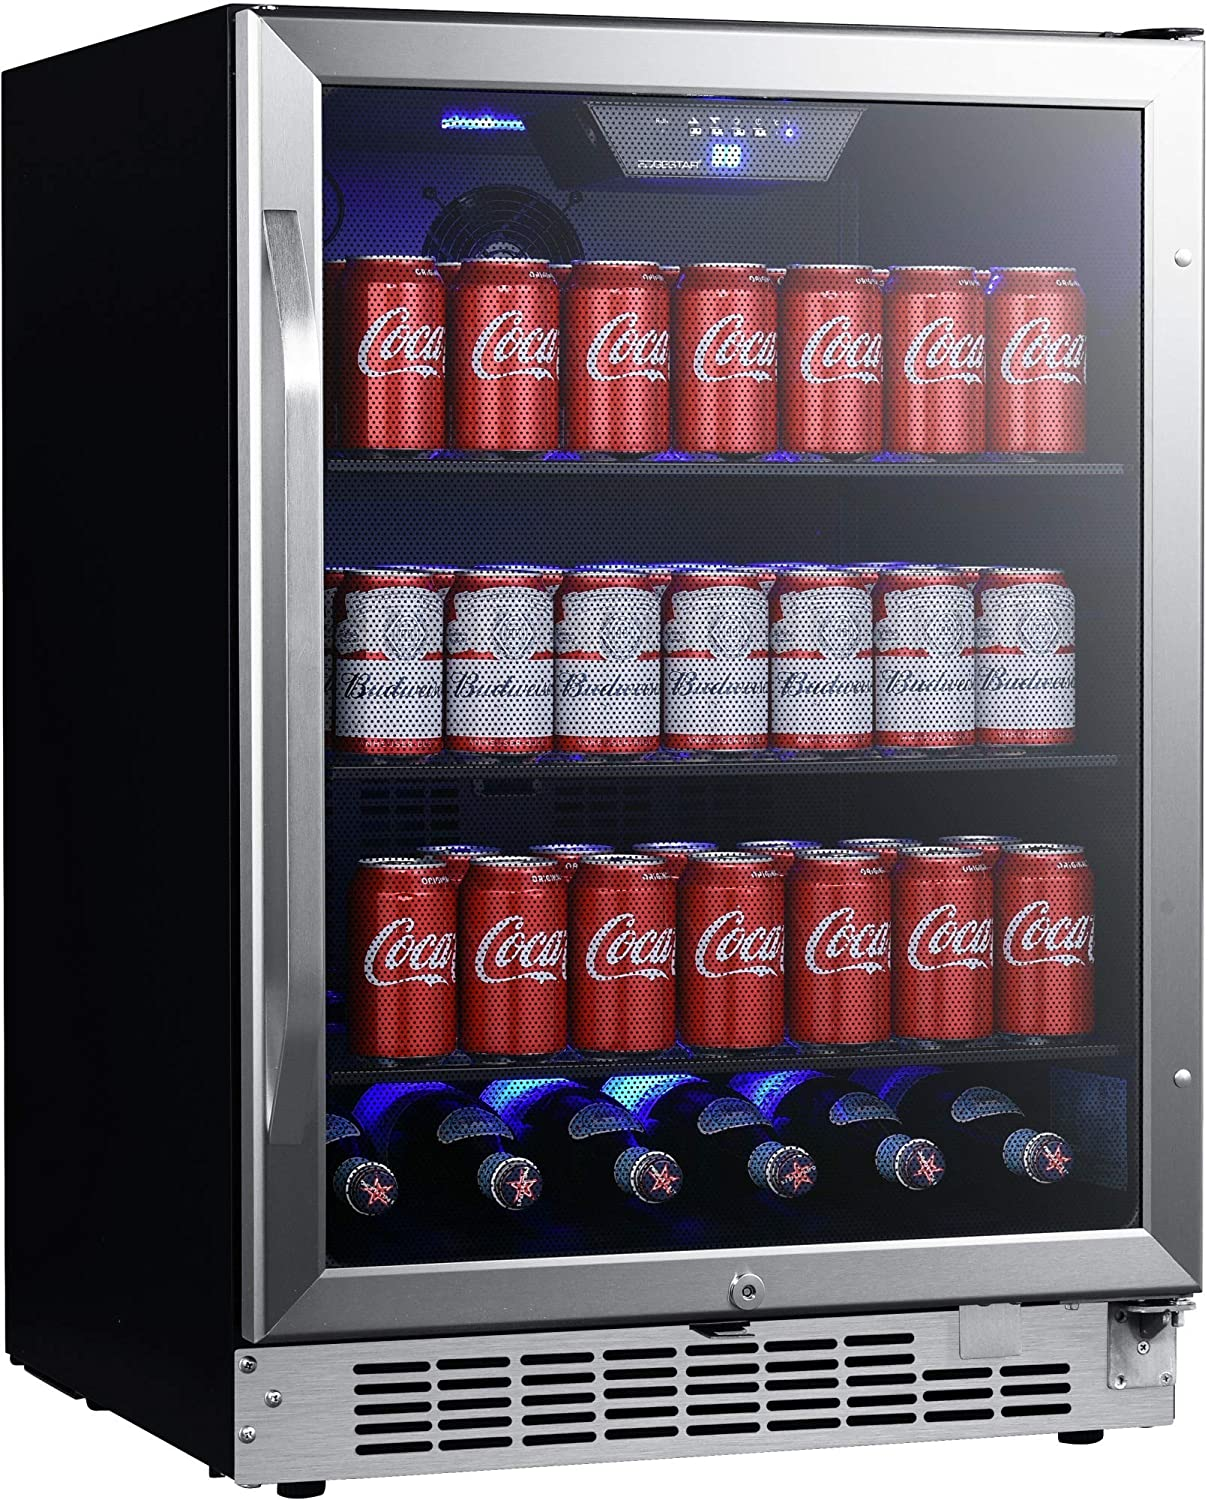 EdgeStar CBR1502SG 24 Inch Wide 142 Can Built-in Beverage Cooler with Tinted Door